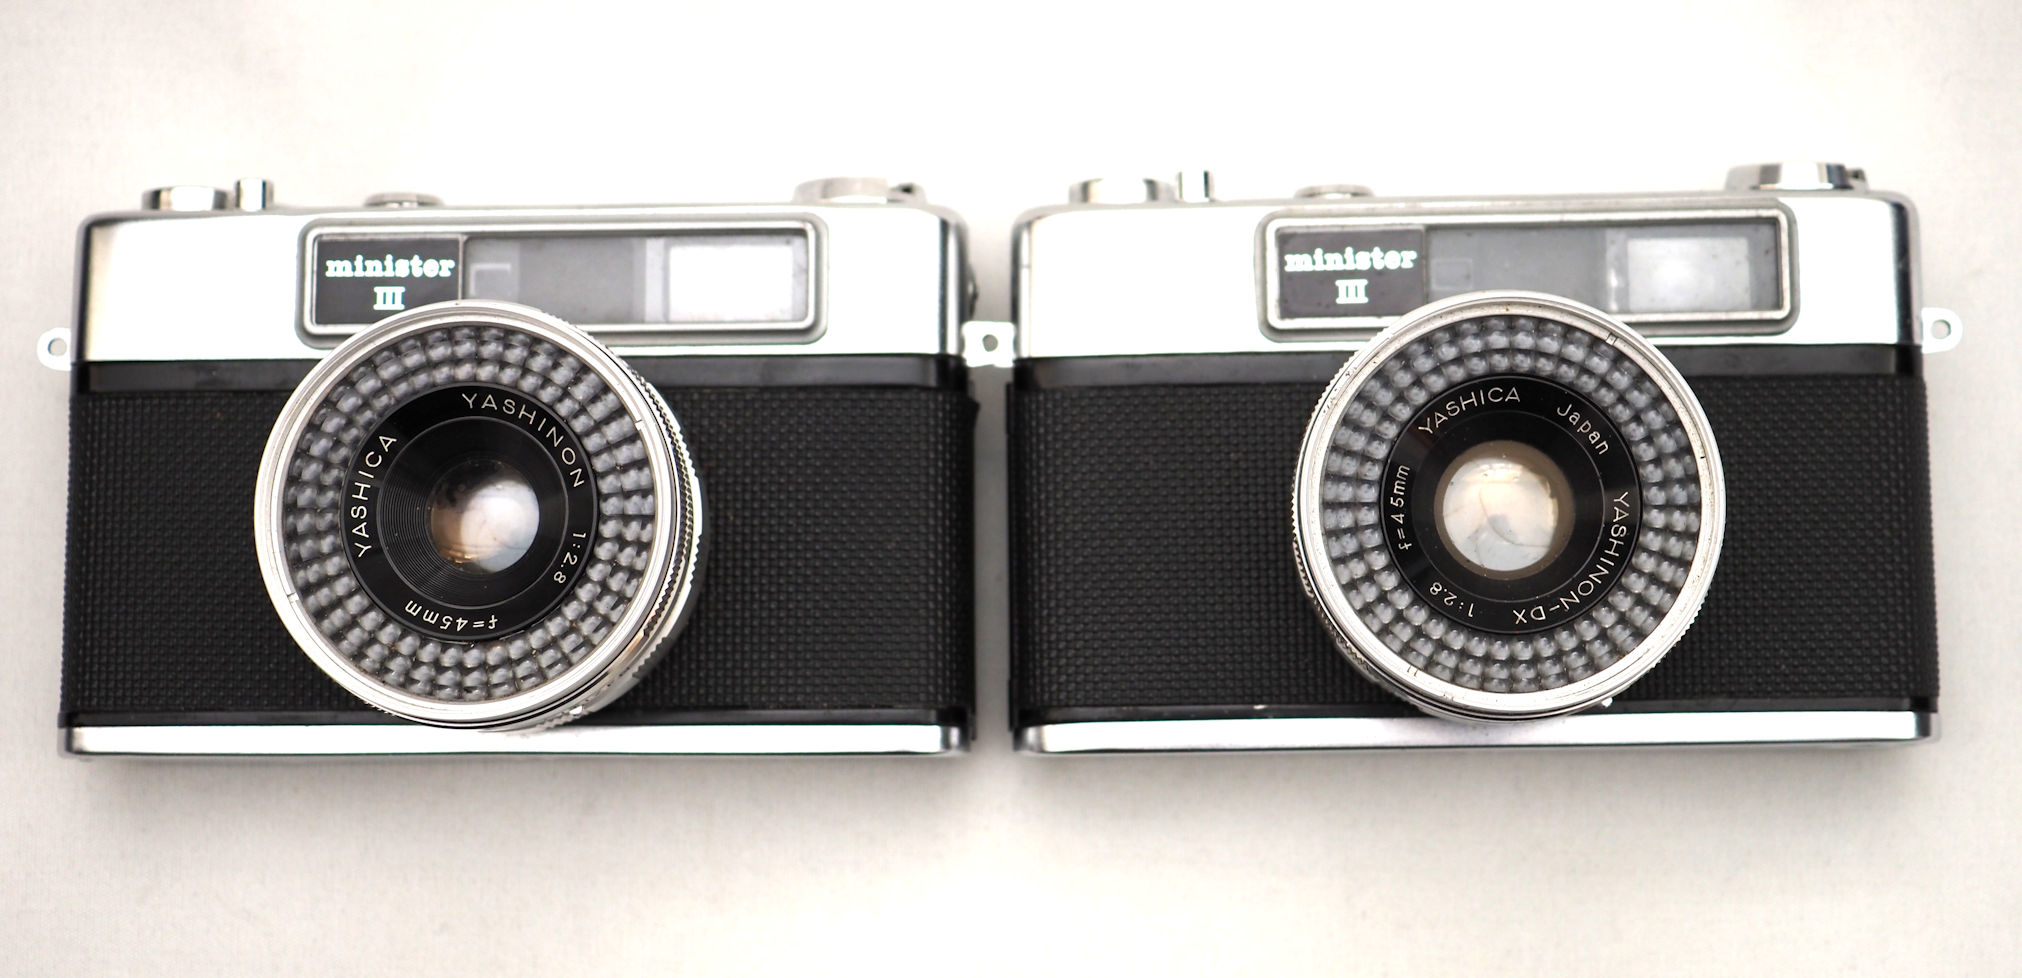 Yashica Minister III from Graham